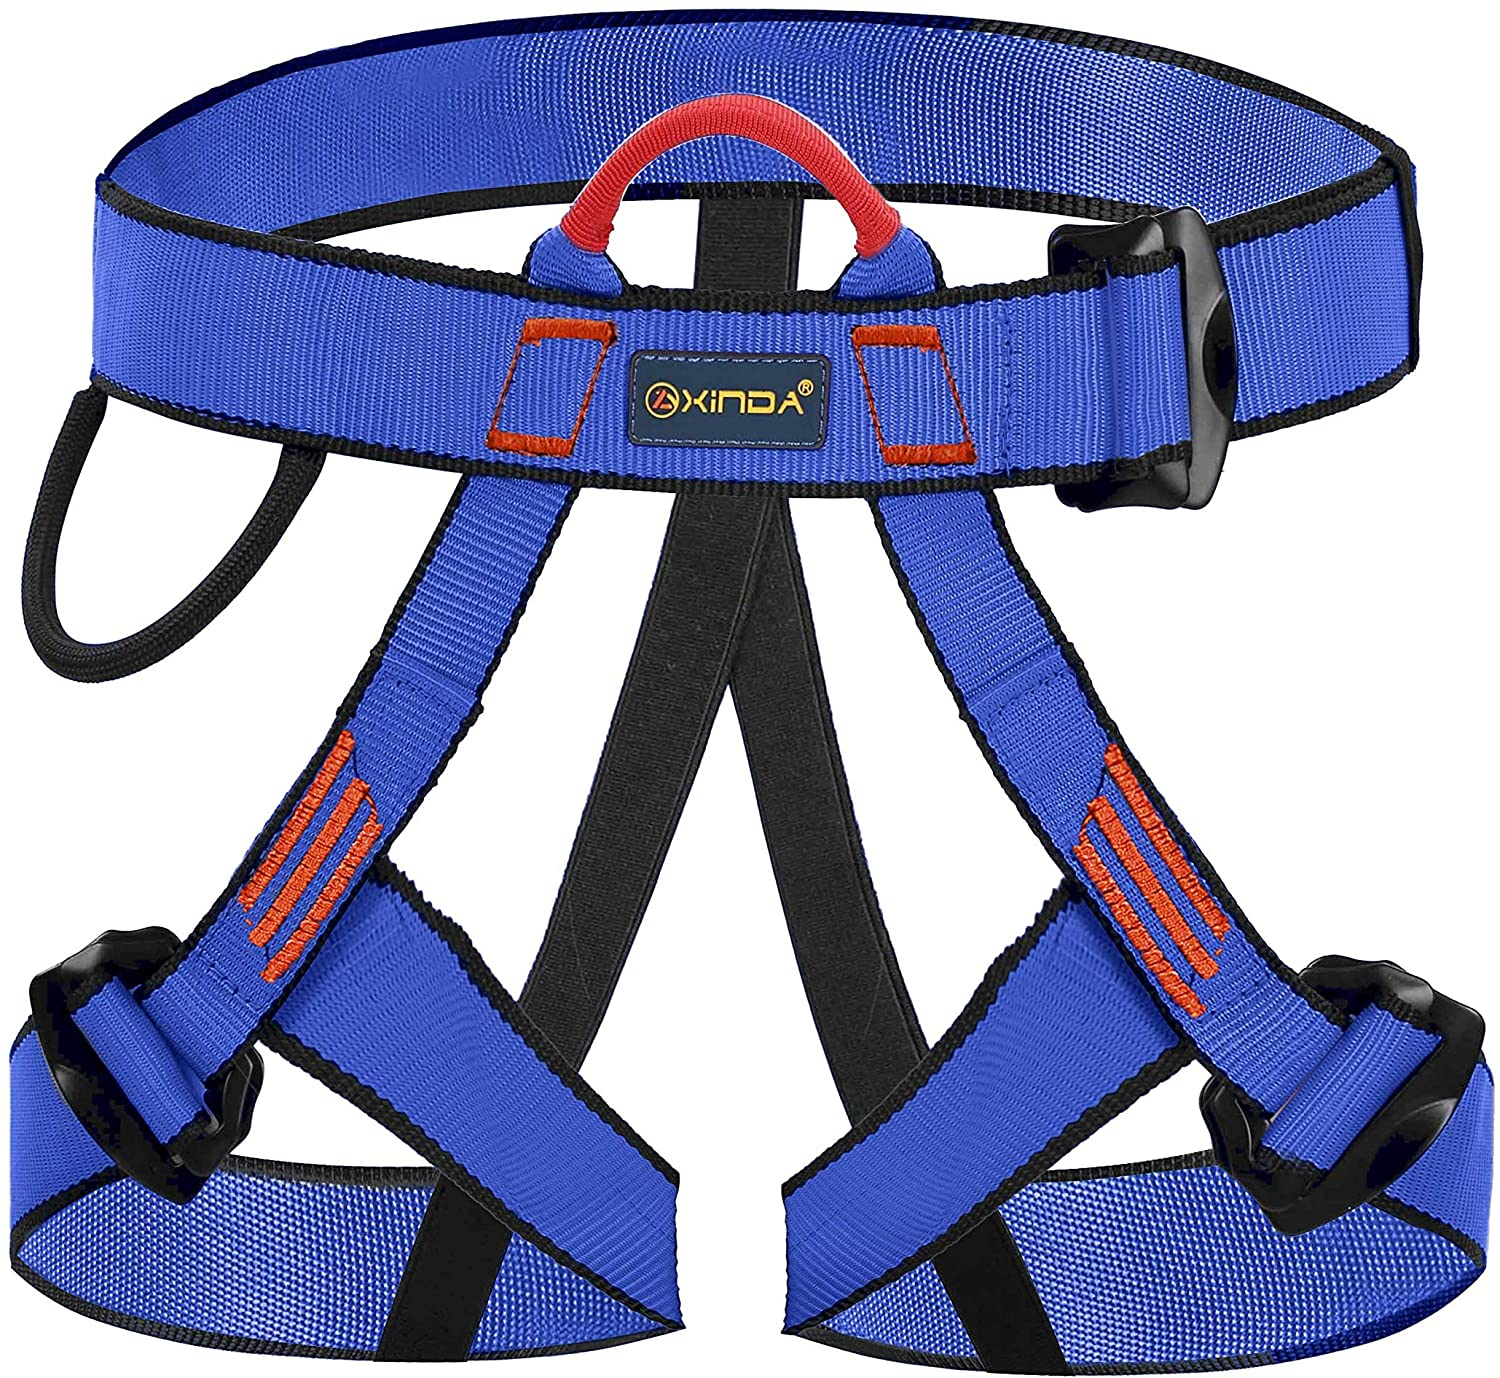 kissloves Half Body Climbing Harness Outdoor Rock Climbing Momentum Harness for Fire Rescue Working on The Higher Level Caving Tree Arborist Rock Climbing Rappelling Equip